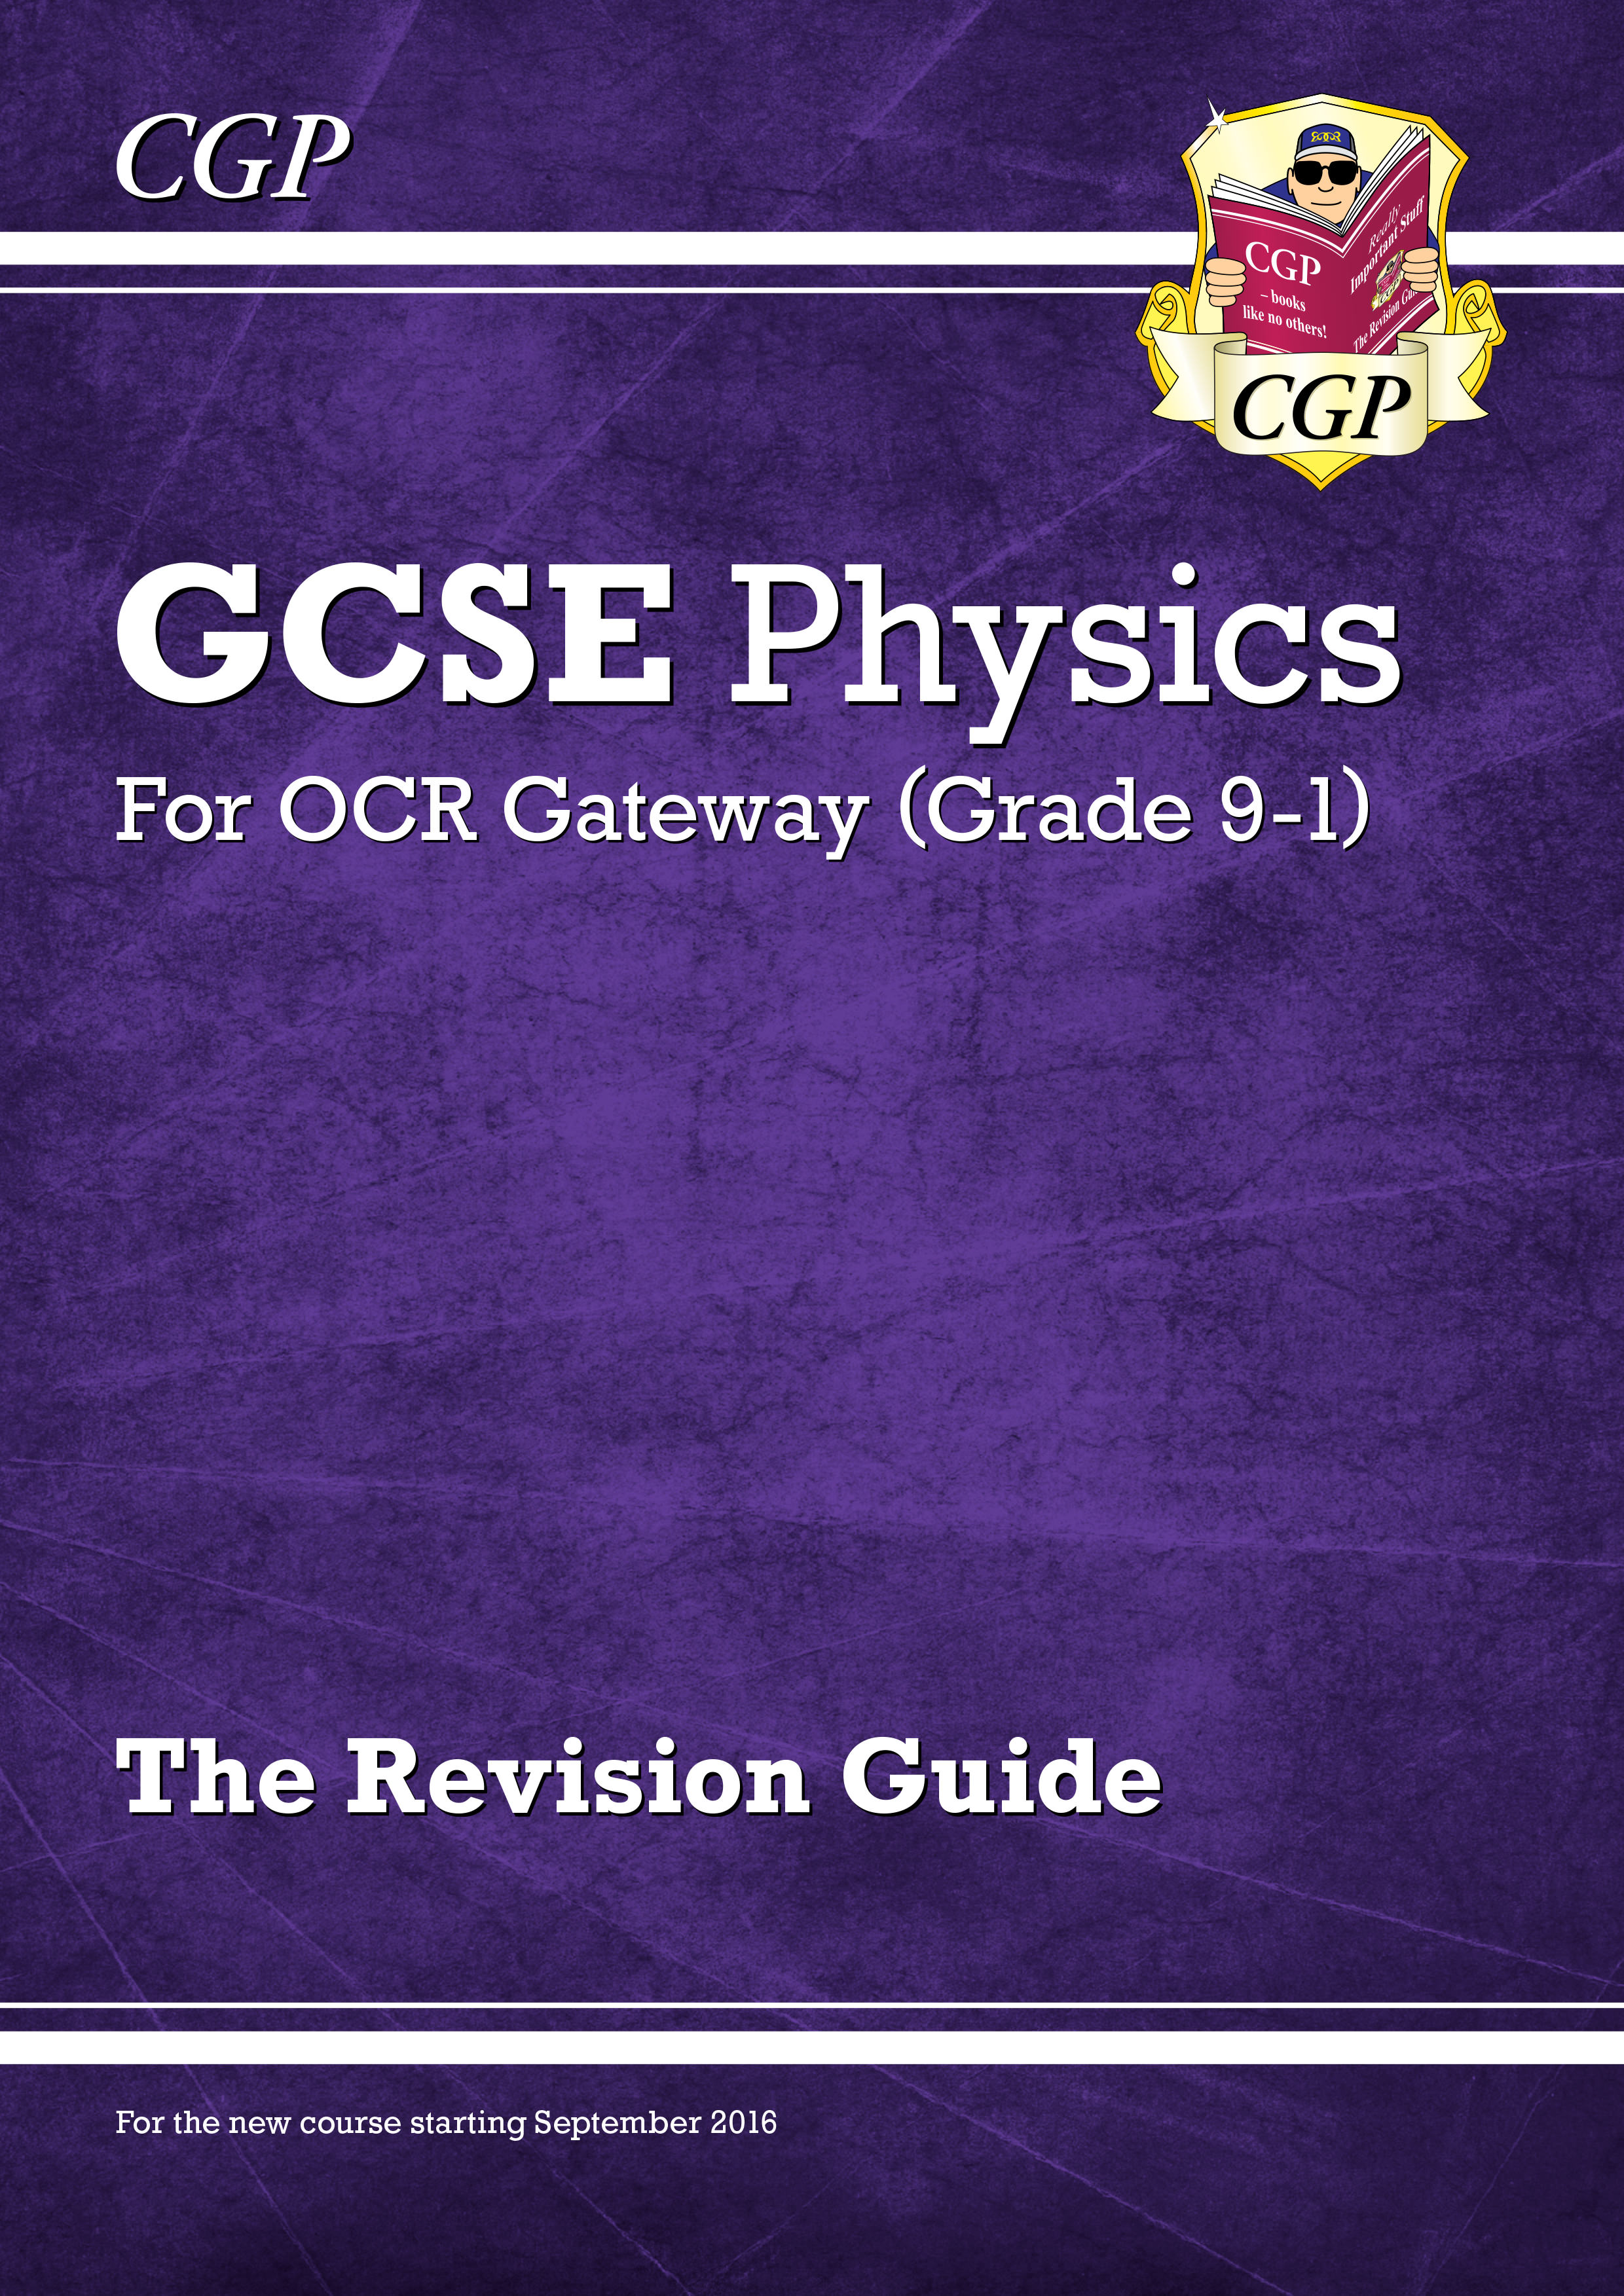 PRR45DK - New Grade 9-1 GCSE Physics: OCR Gateway Revision Guide